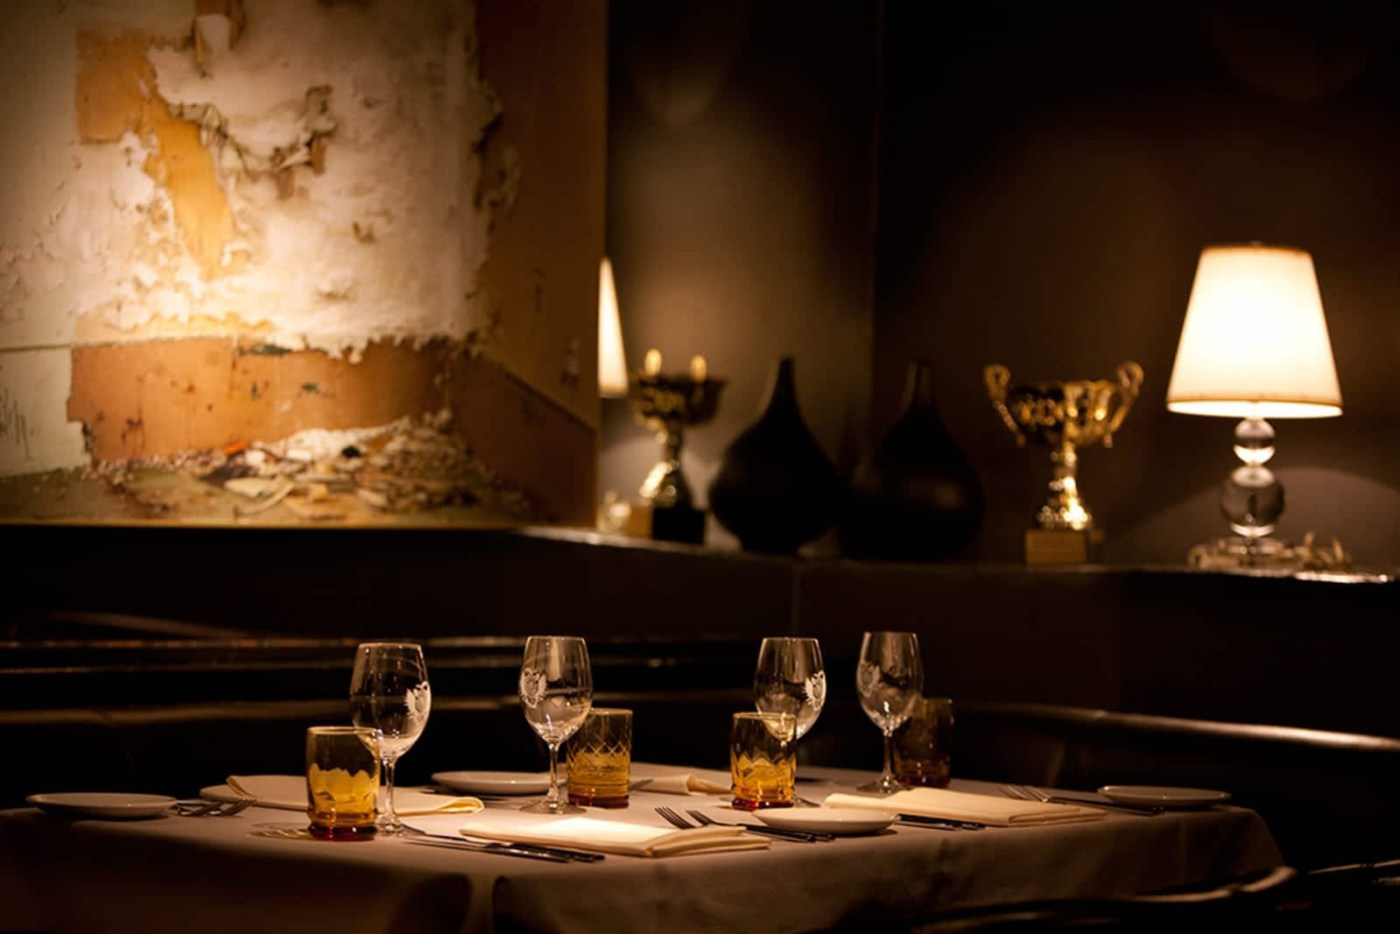 The Best Old Montreal Restaurants - Club Chasse et Peche for the beef in Montreal